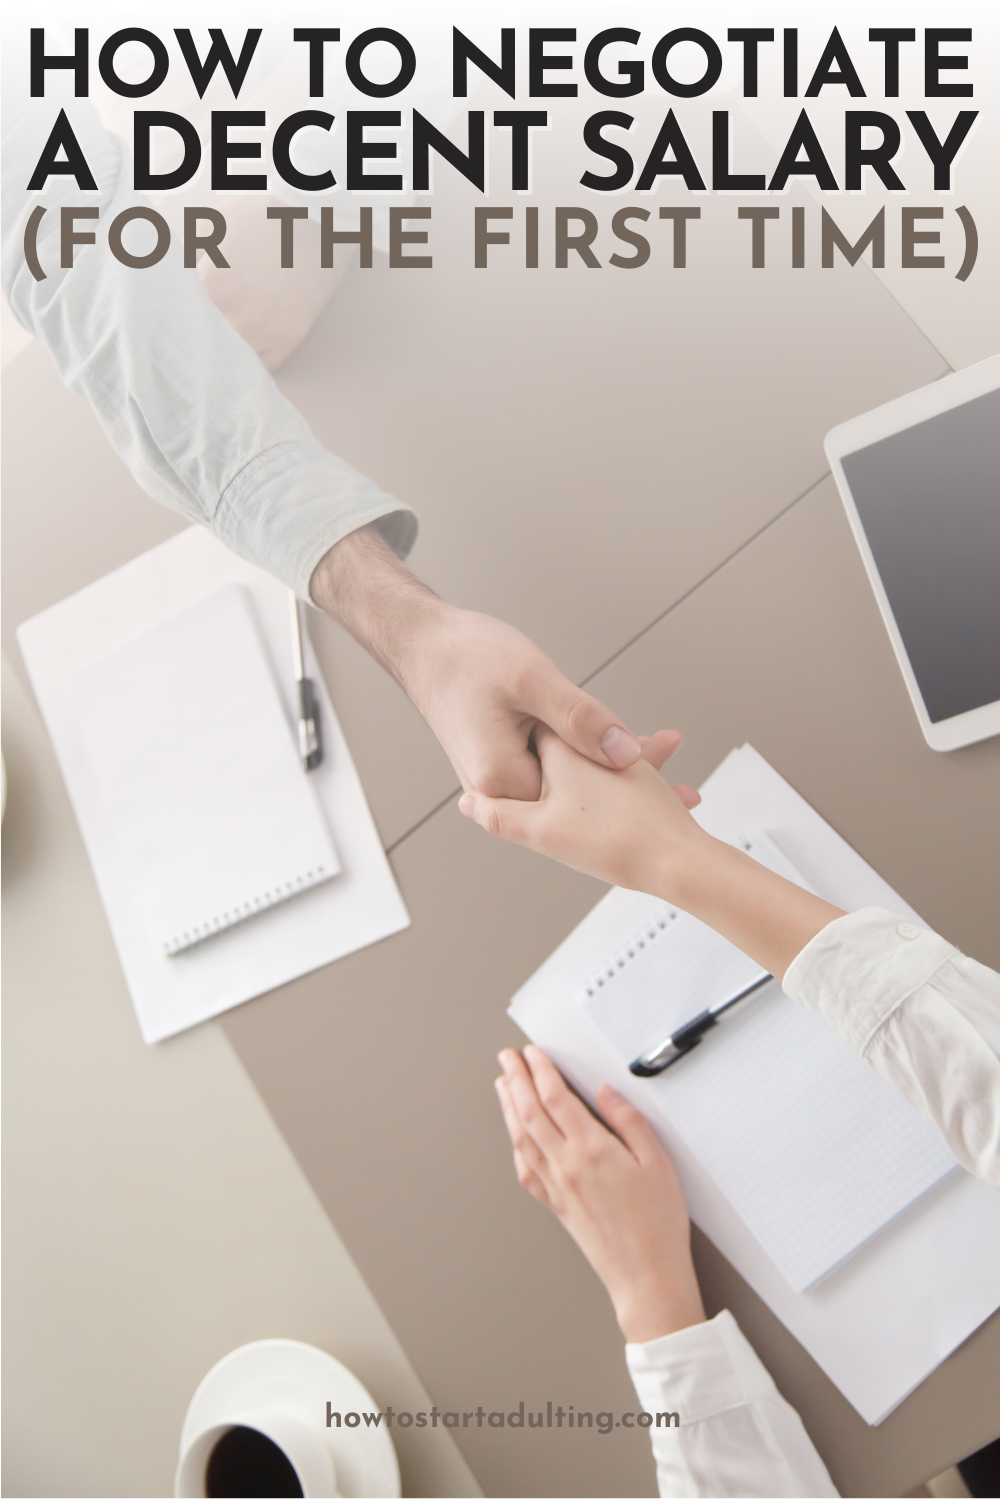 How To Negotiate A Salary For The First Time